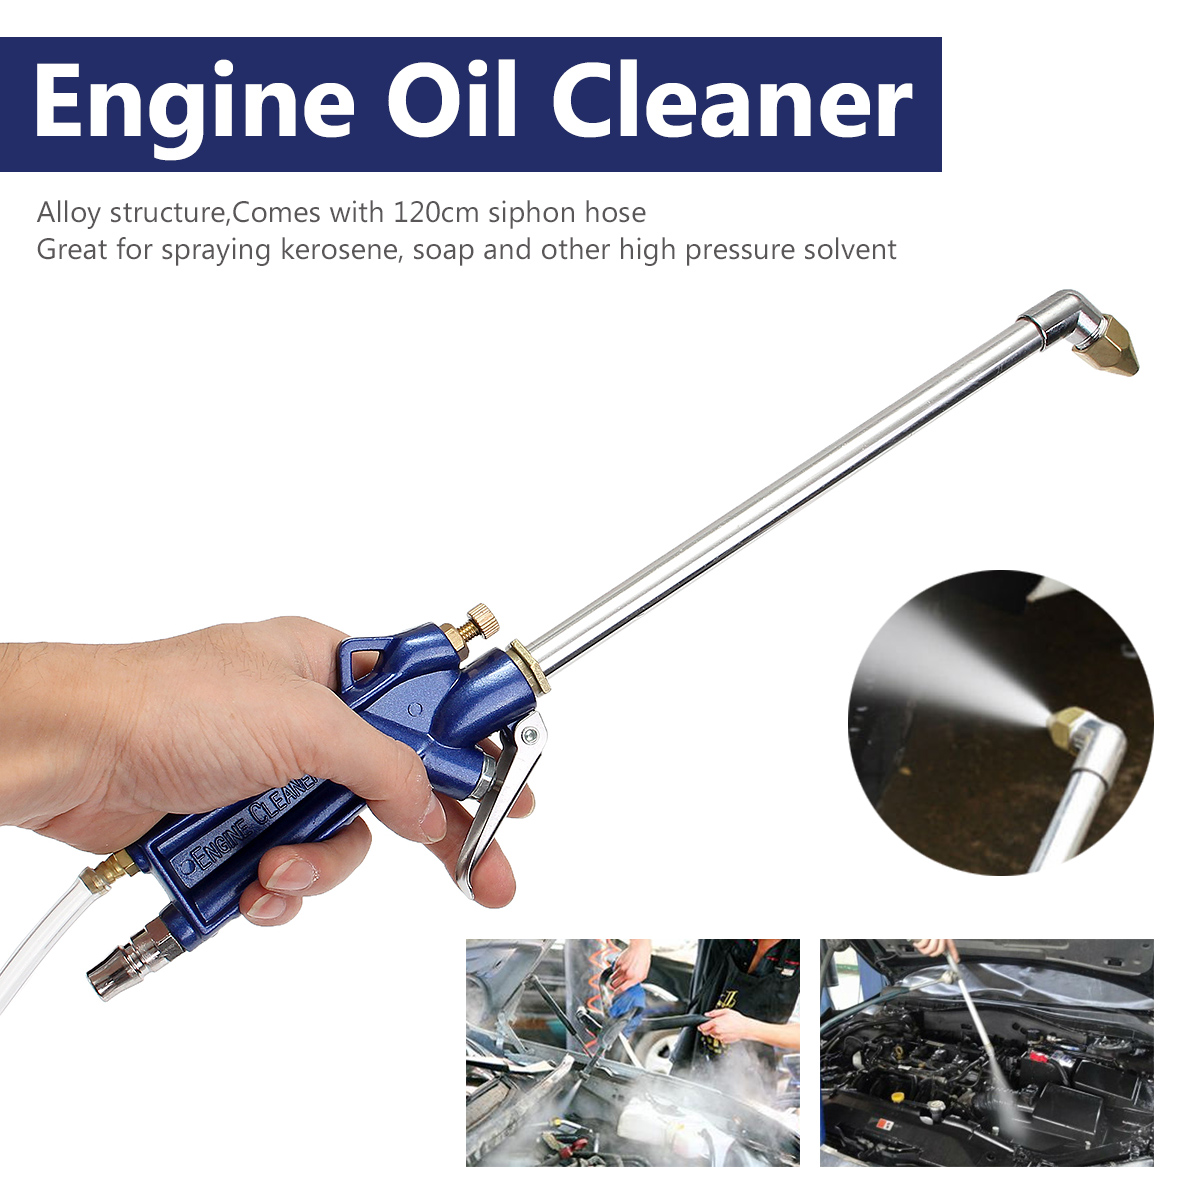 Engine-Oil-Cleaner-Tool Machinery-Parts Hose Pneumatic-Tool Auto-Water-Cleaning-Gun Car title=